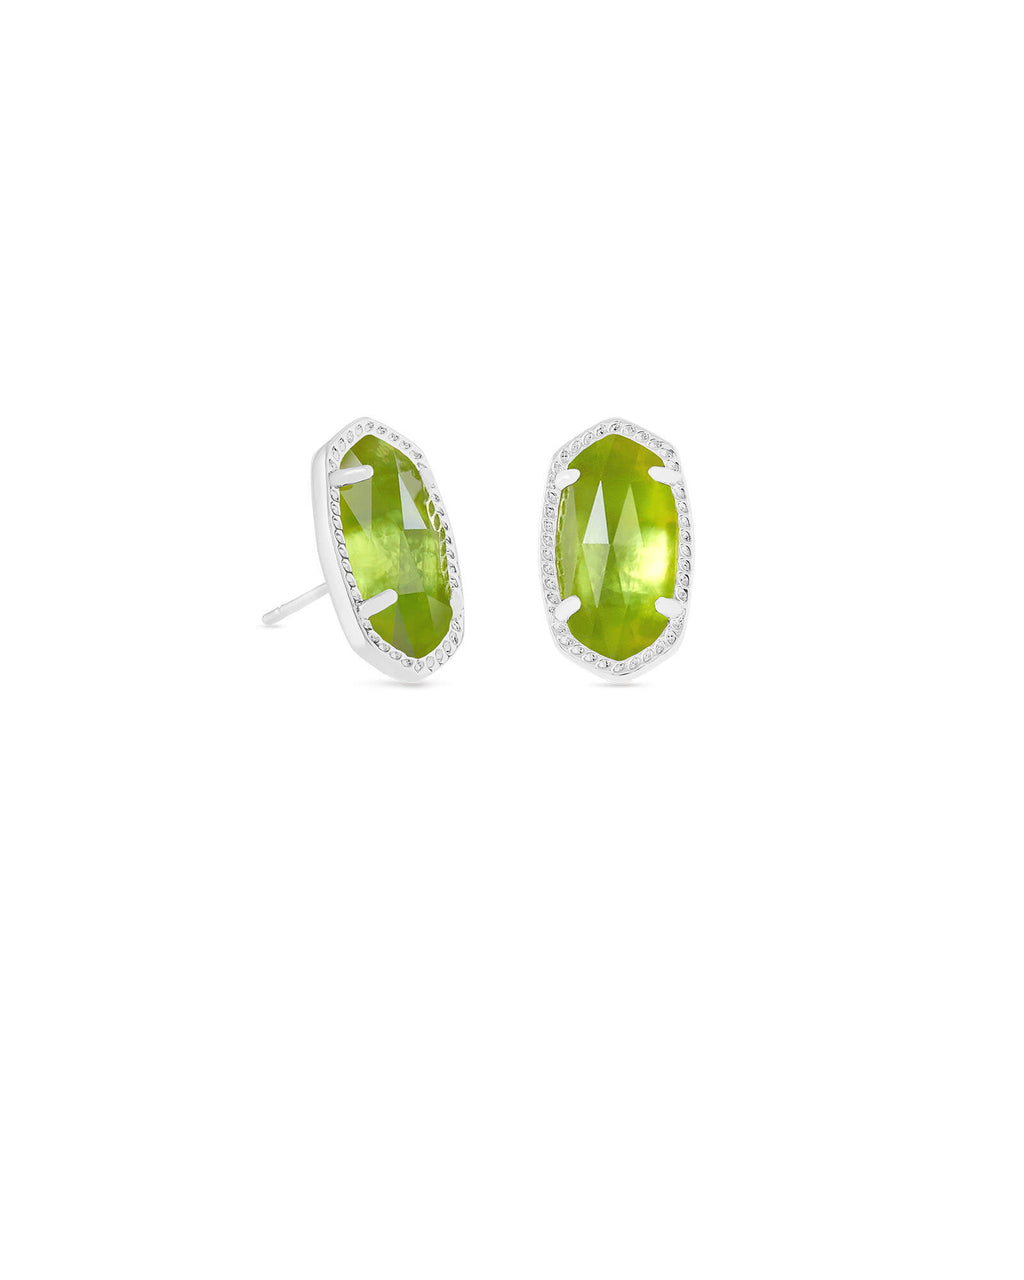 Kendra Scott Ellie Silver Stud Earrings In Peridot August Birthstone